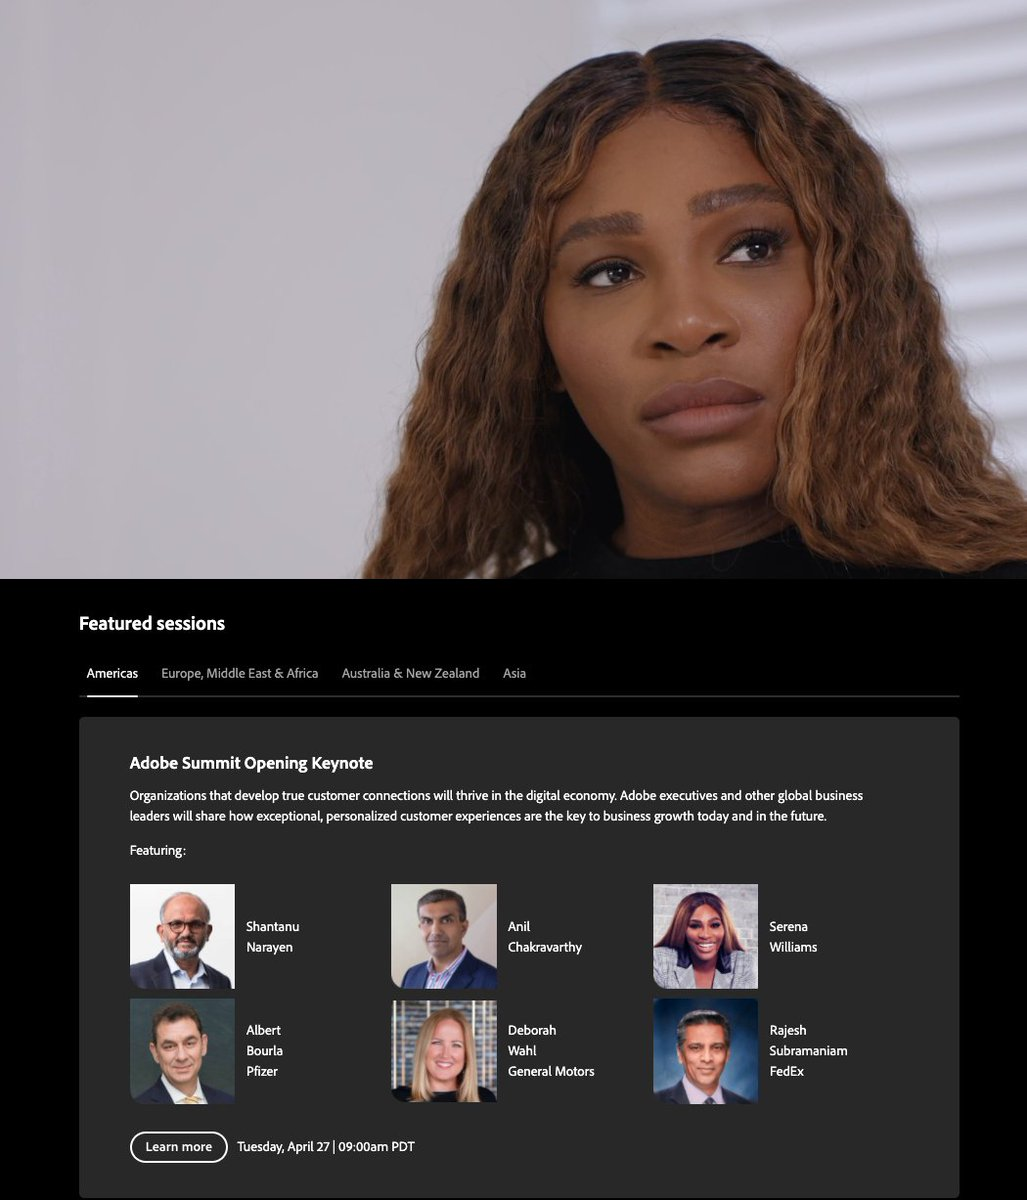 brentwpeterson: Serena Willams now live on the #AdobeSummit https://t.co/5l5VKYgoPn